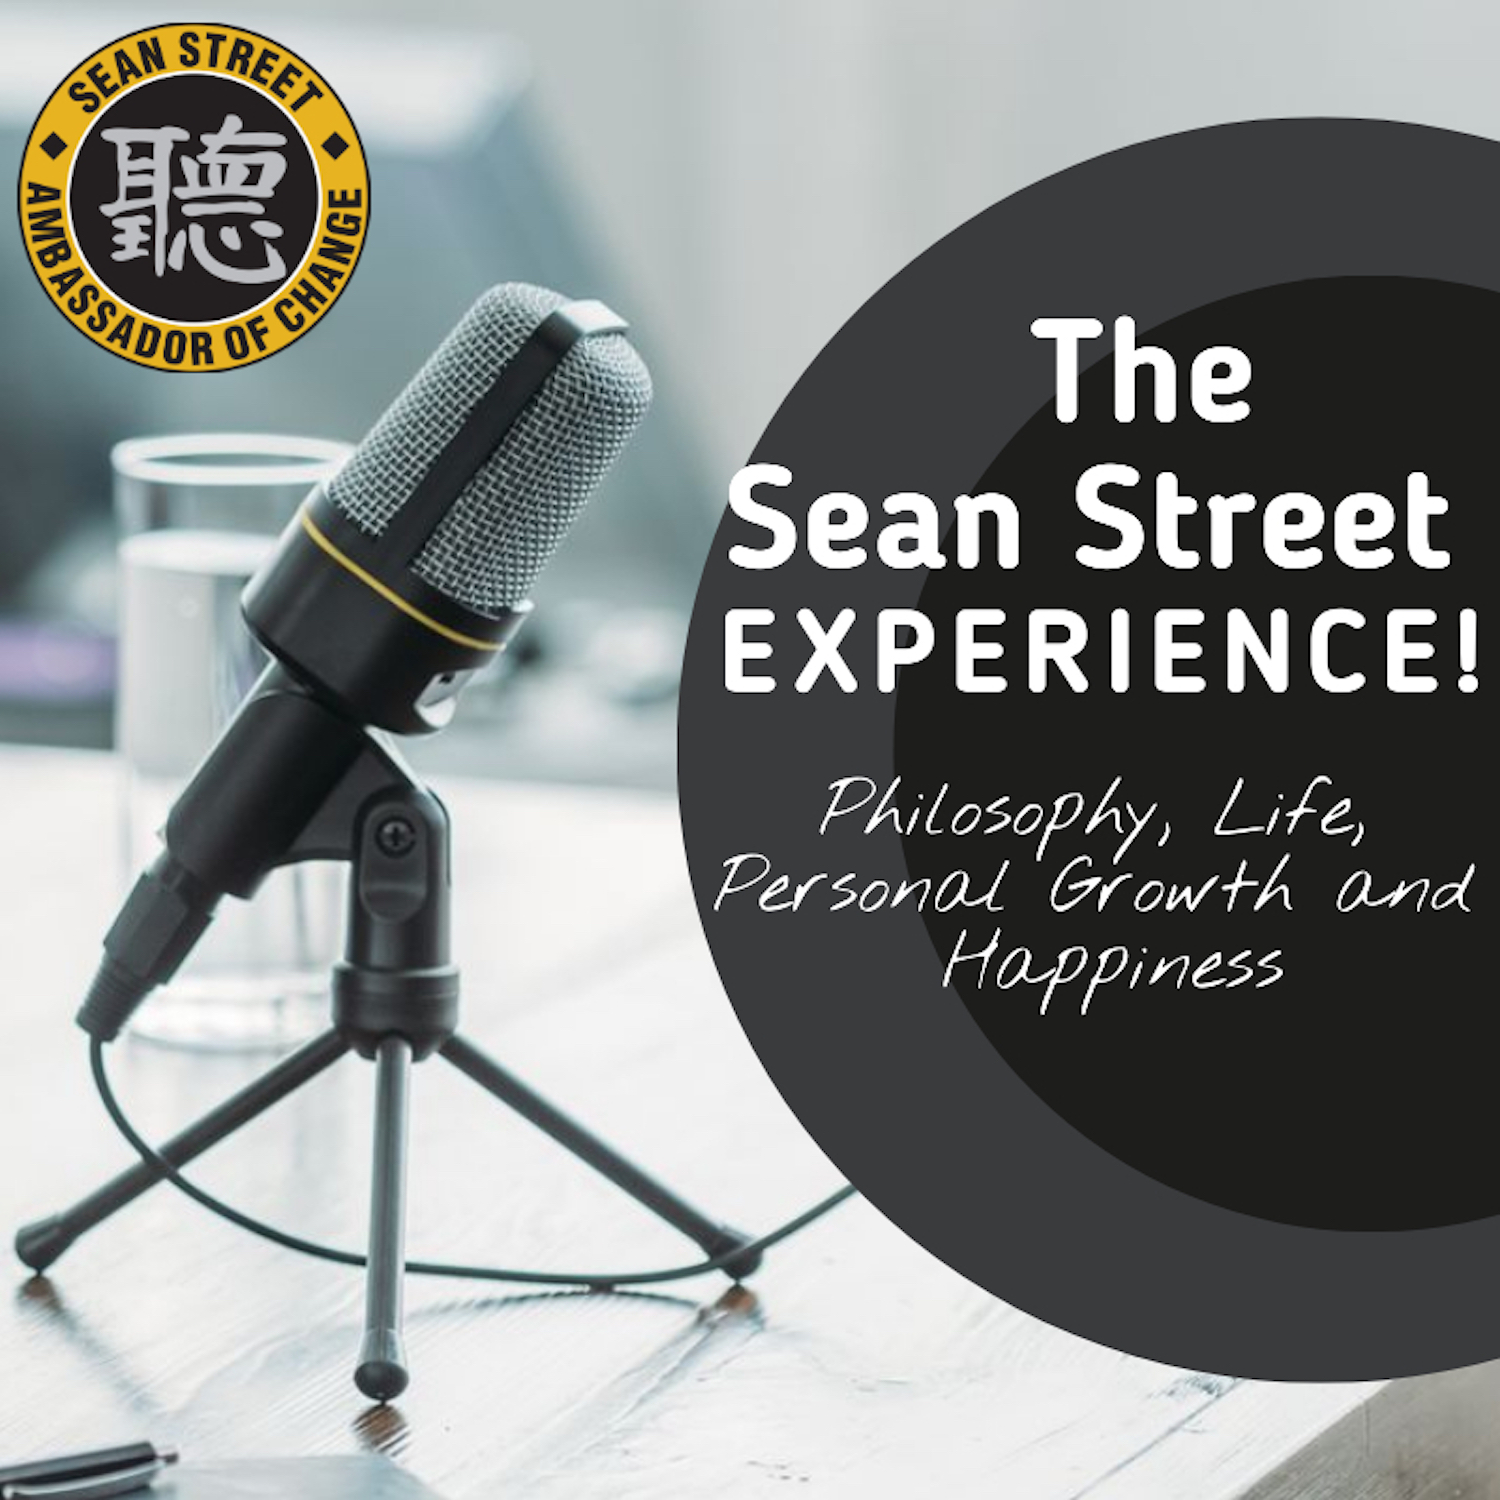 The Sean Street Experience